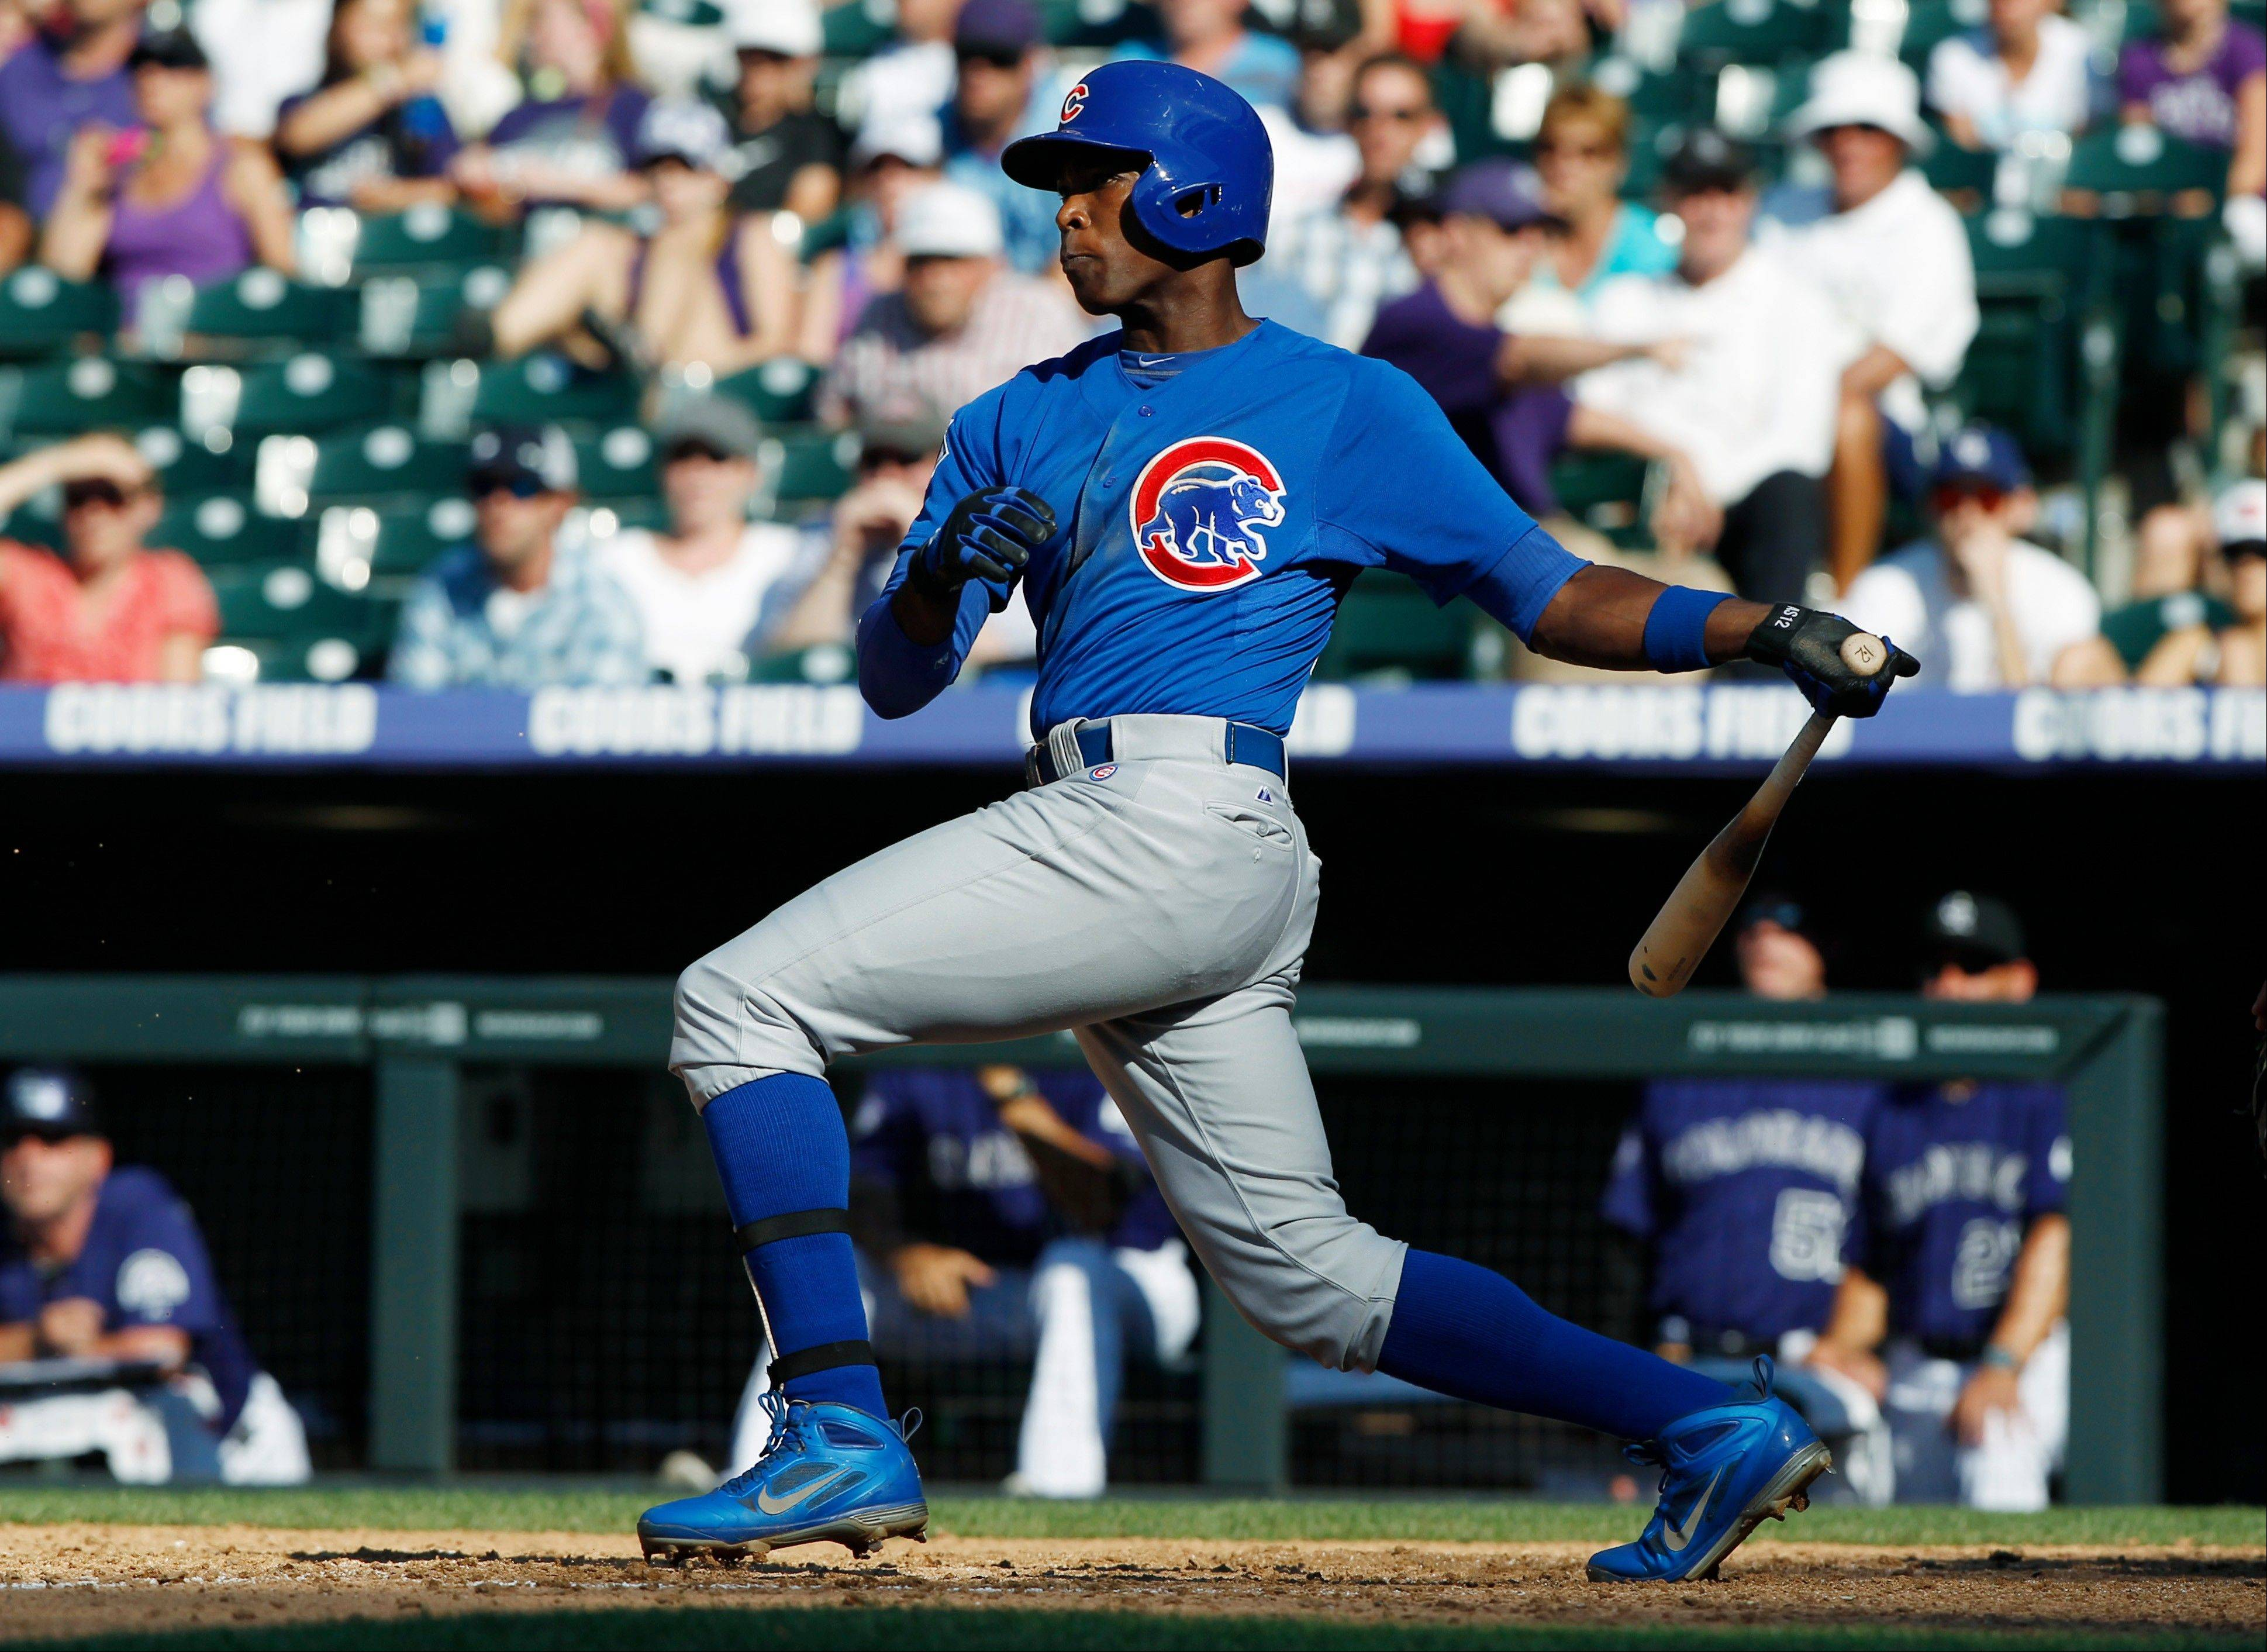 Chicago Cubs outfielder Alfonso Soriano grounds out to drive in a run against the Colorado Rockies in the ninth inning of the Rockies' 4-3 victory on Sunday.